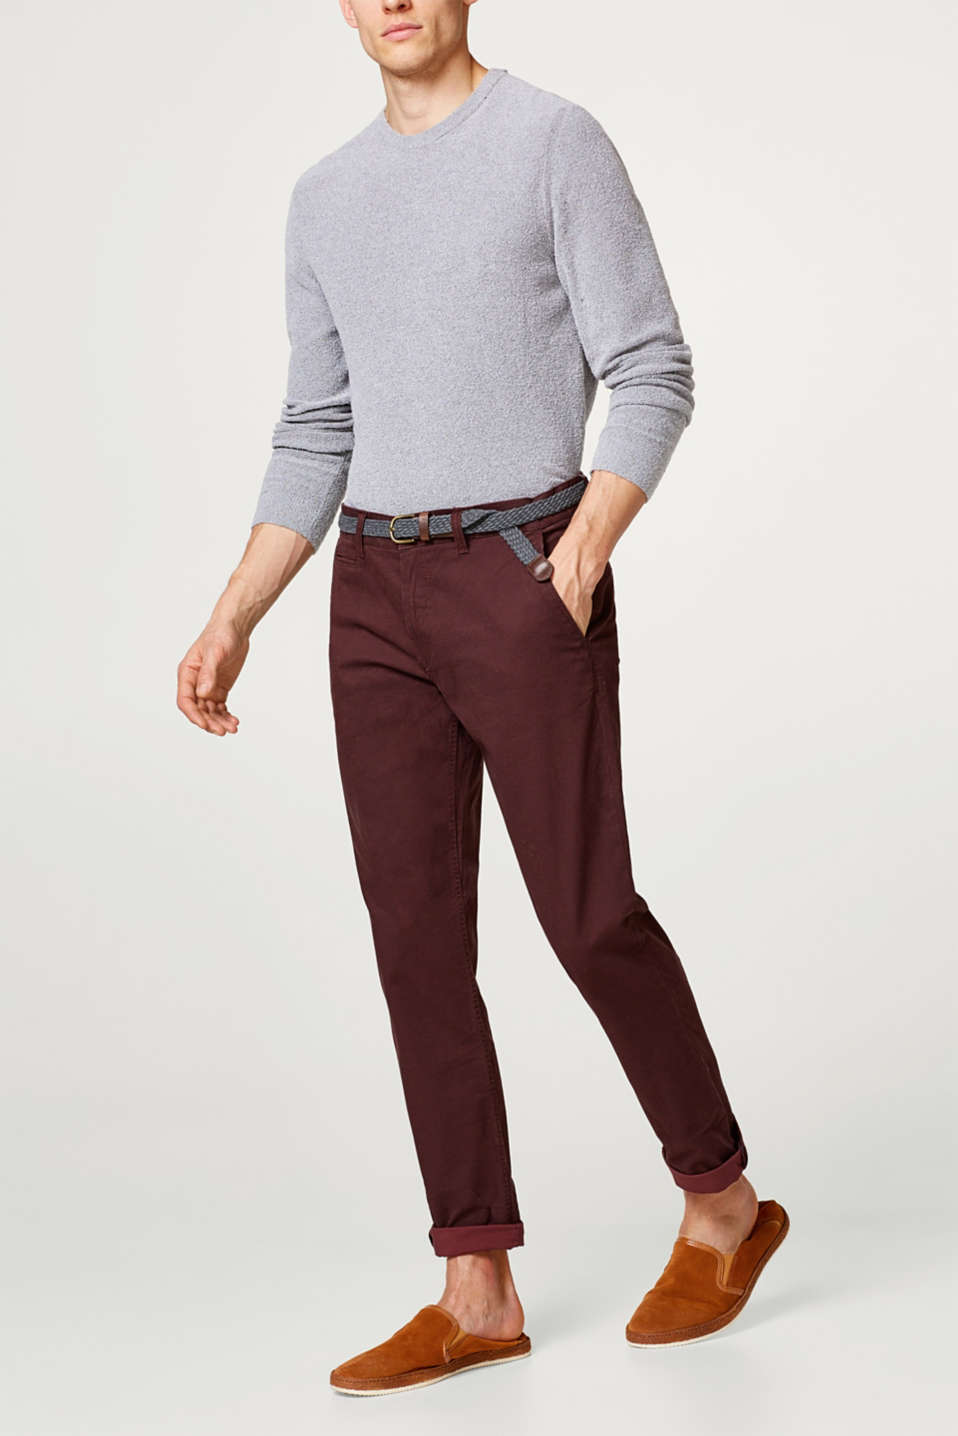 Esprit - Stretchchino met print all-over